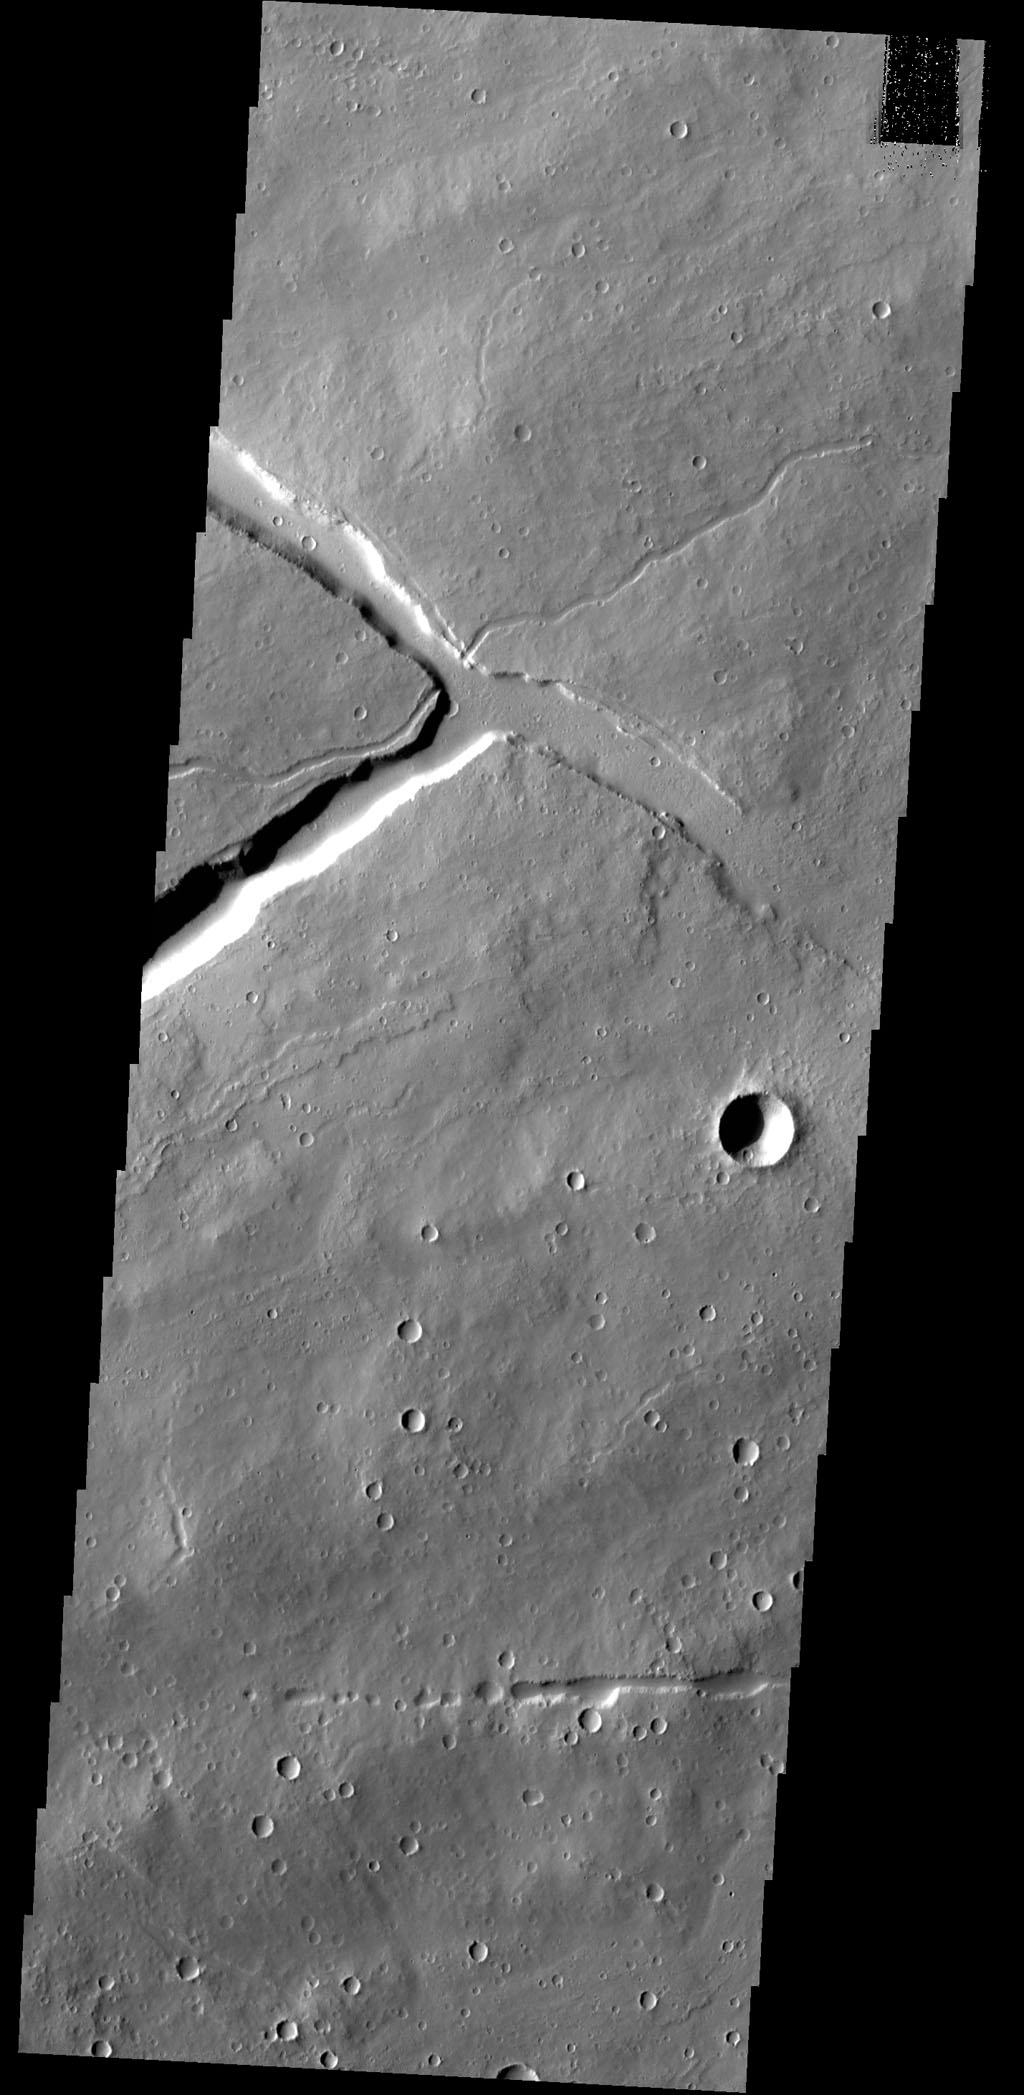 Towards the top of this image from NASA's 2001 Mars Odyssey spacecraft is a 'T' shaped depression and two sections of narrow channel located on the northeast part of the Elysium Mons volcanic complex. Fluids (like water, or lava) flow downhill.